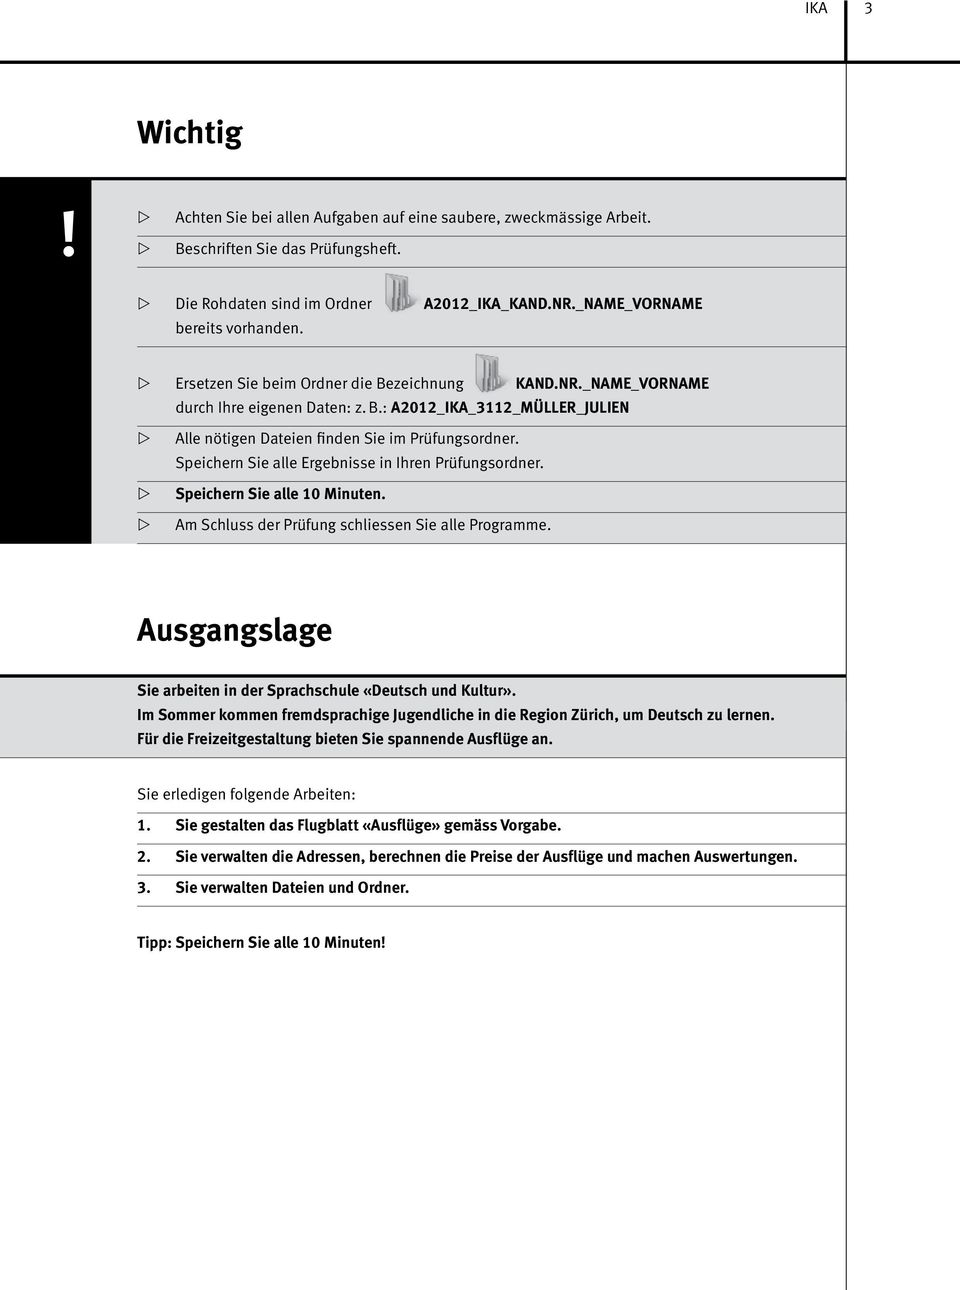 Spichrn Si all Ergbniss in Ihrn Prüfungsordnr. Spichrn Si all 10 Minutn. Am Schluss dr Prüfung schlissn Si all Programm. Ausgangslag Si arbitn in dr Sprachschul «Dutsch und Kultur».